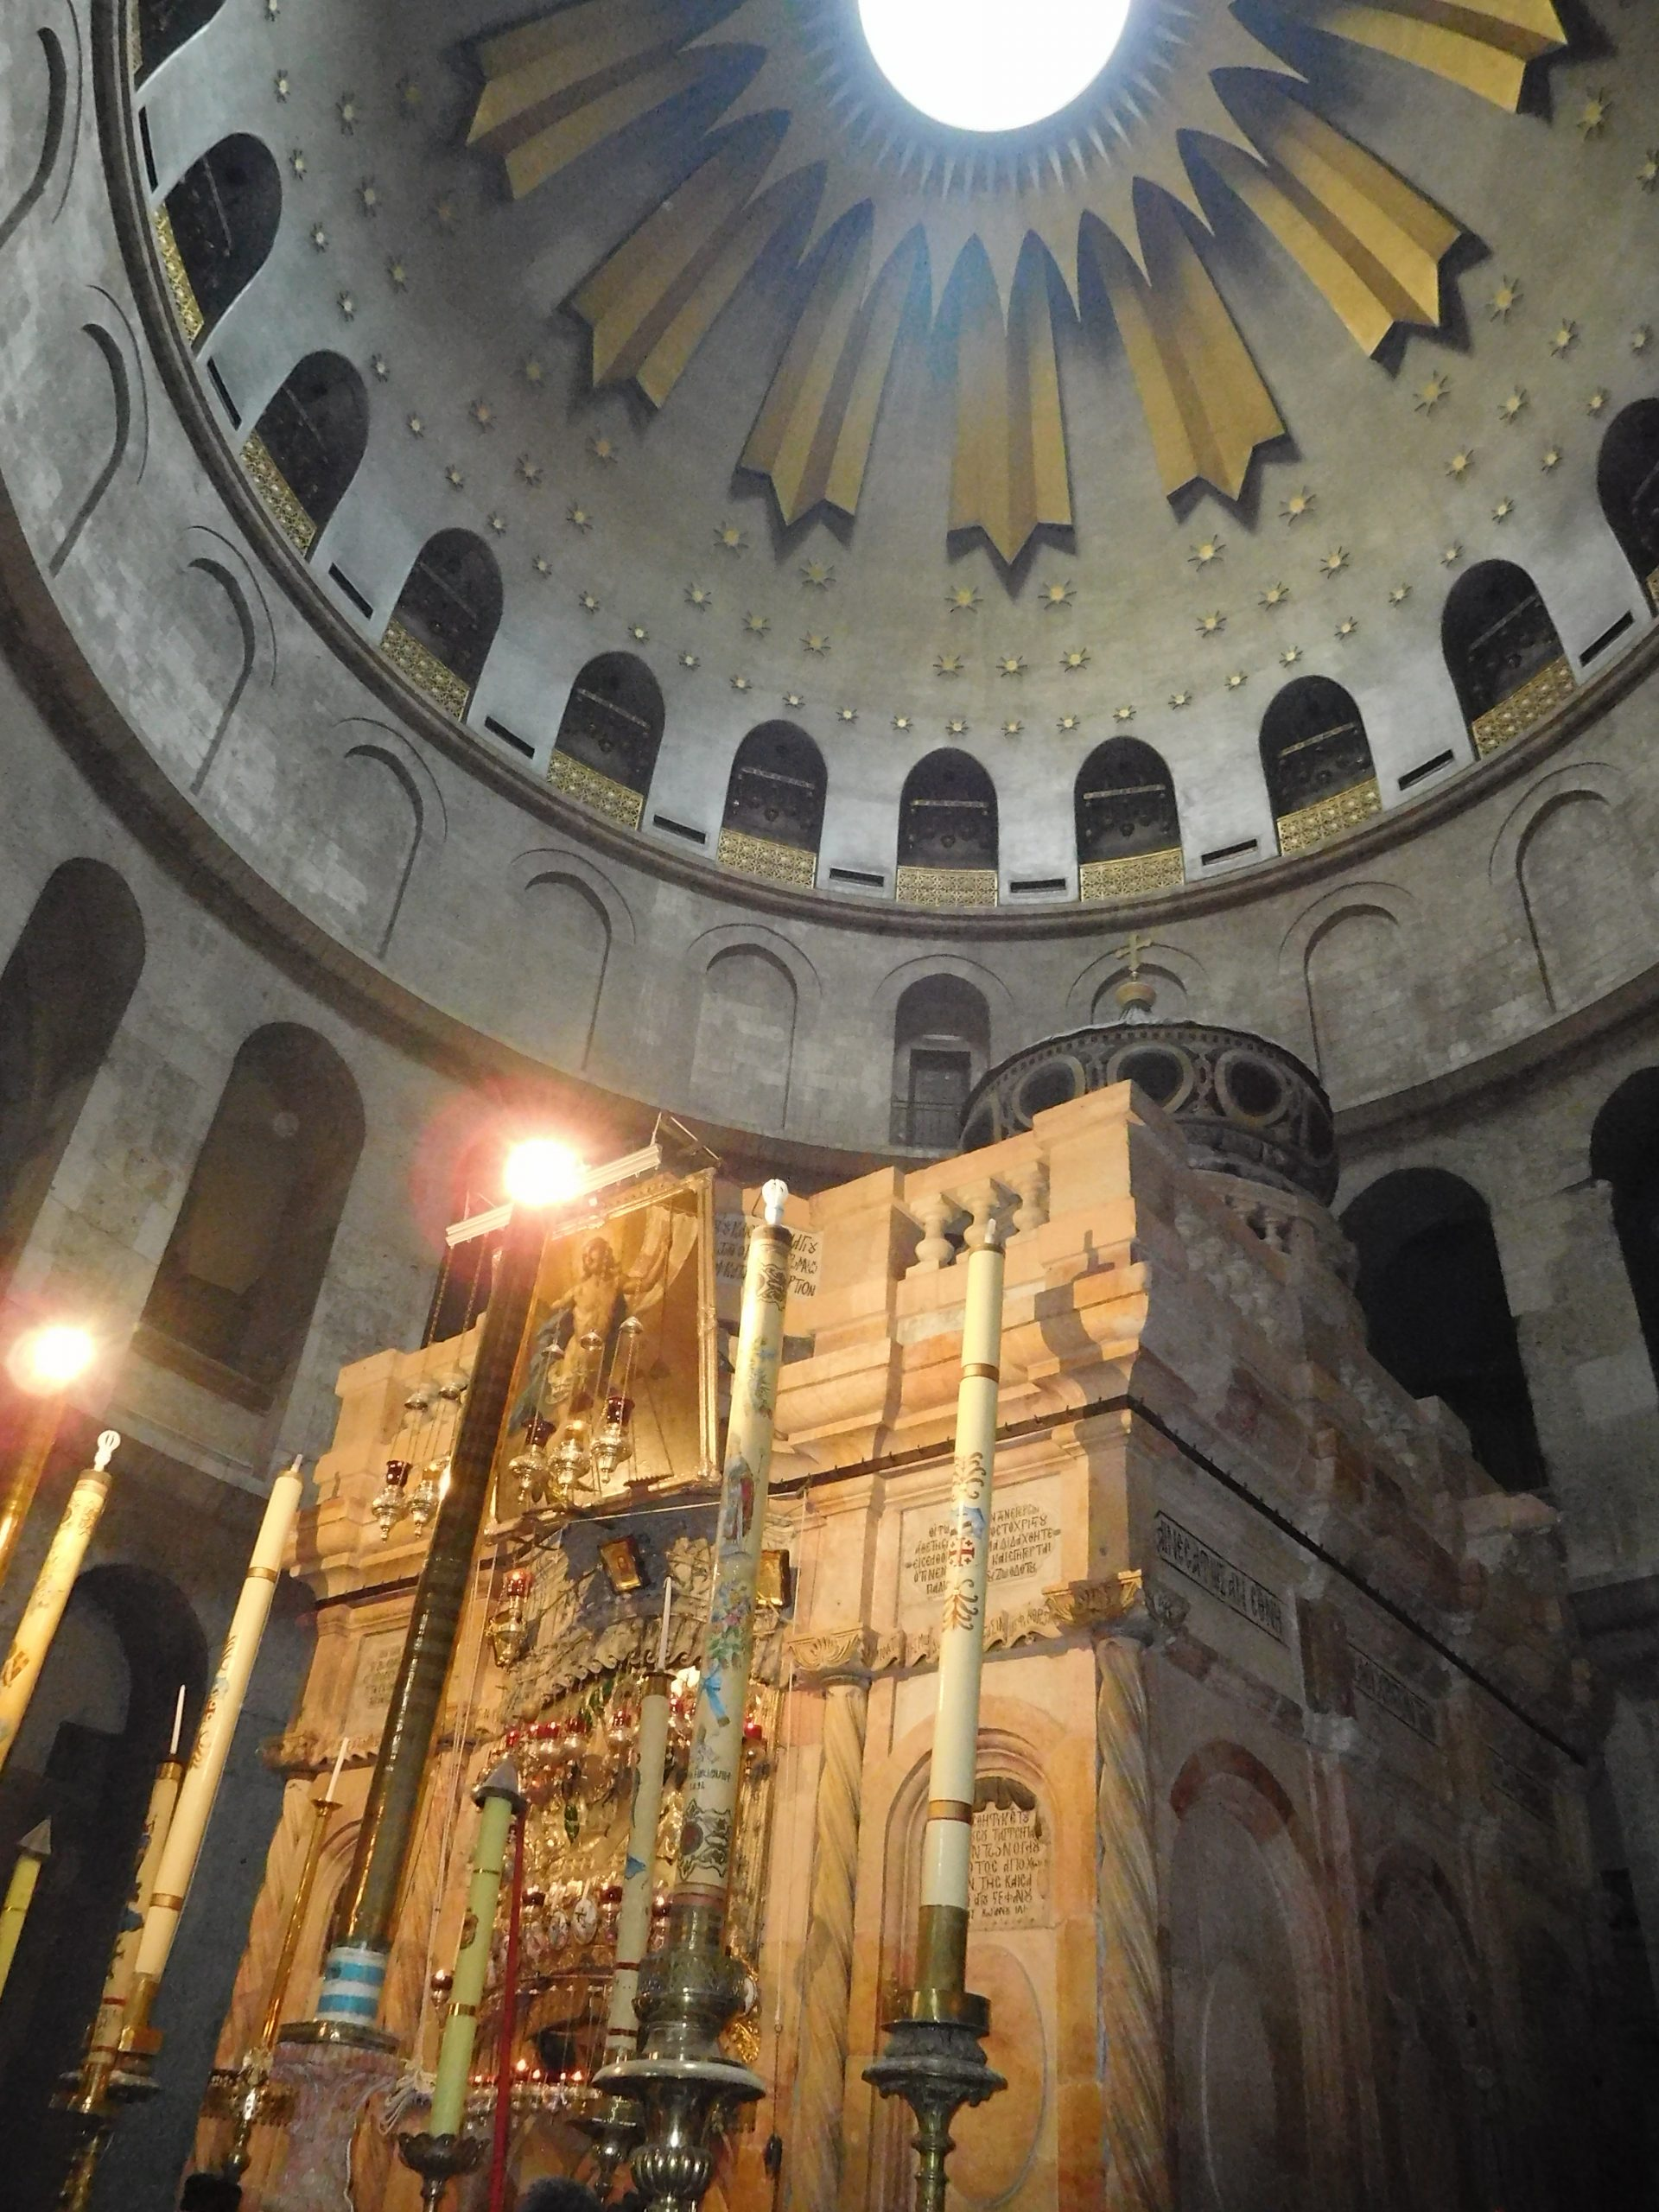 The Aedicule (the tomb of Christ) at the Church of teh Holy Sepulchre, Jerusalem